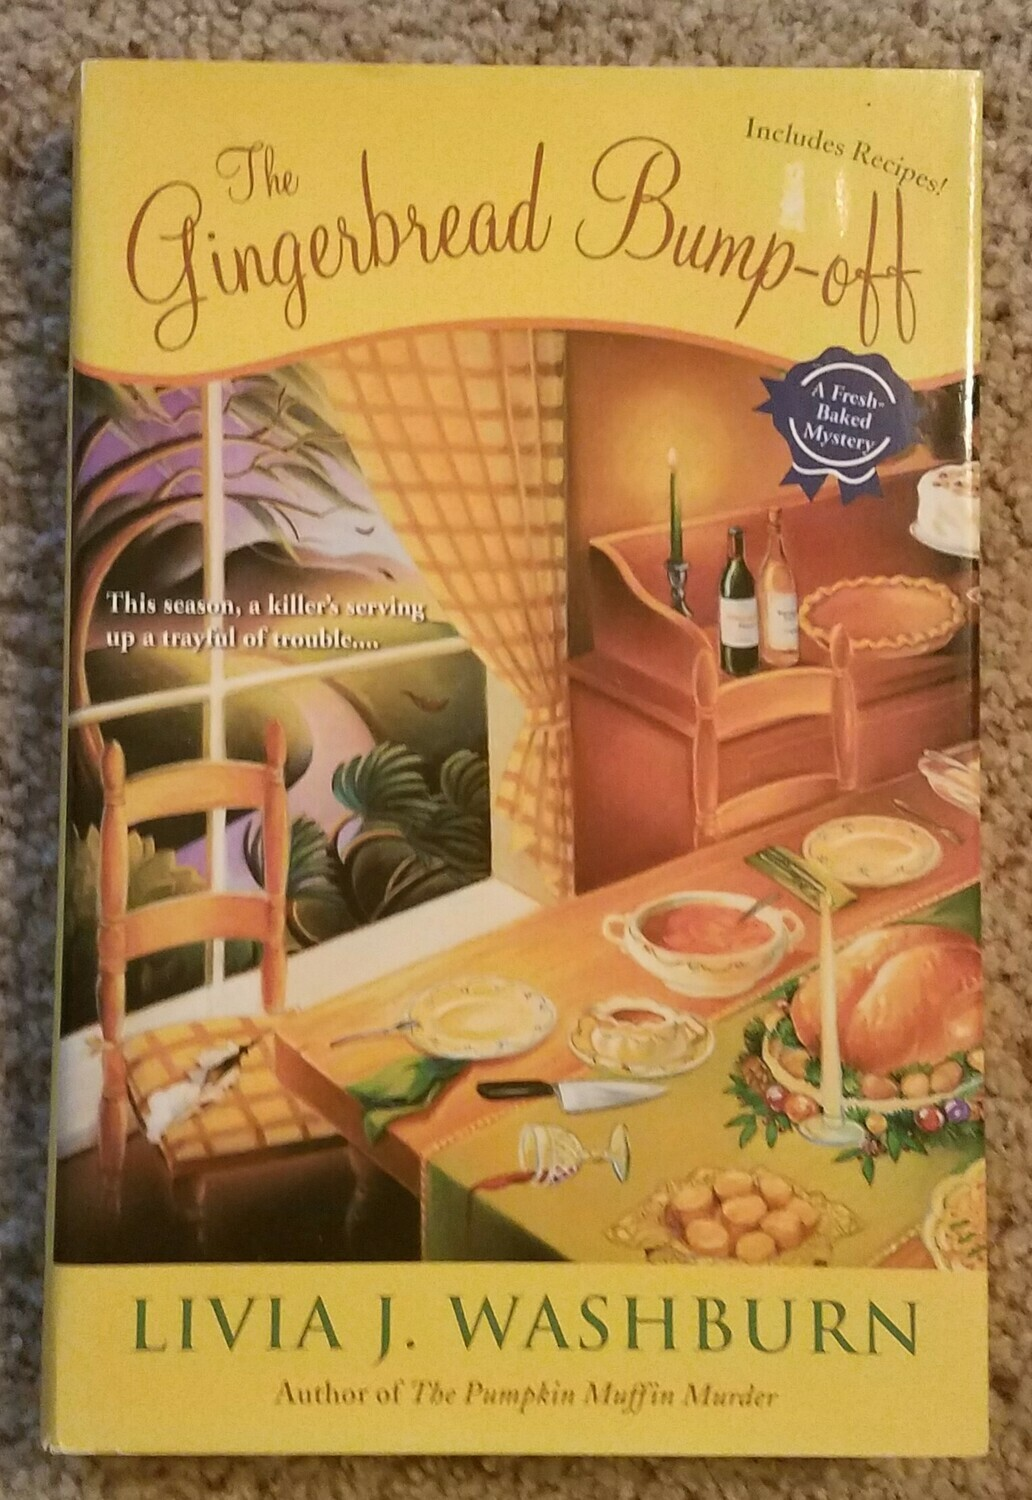 The Gingerbread Bump-off by Livia J. Washburn